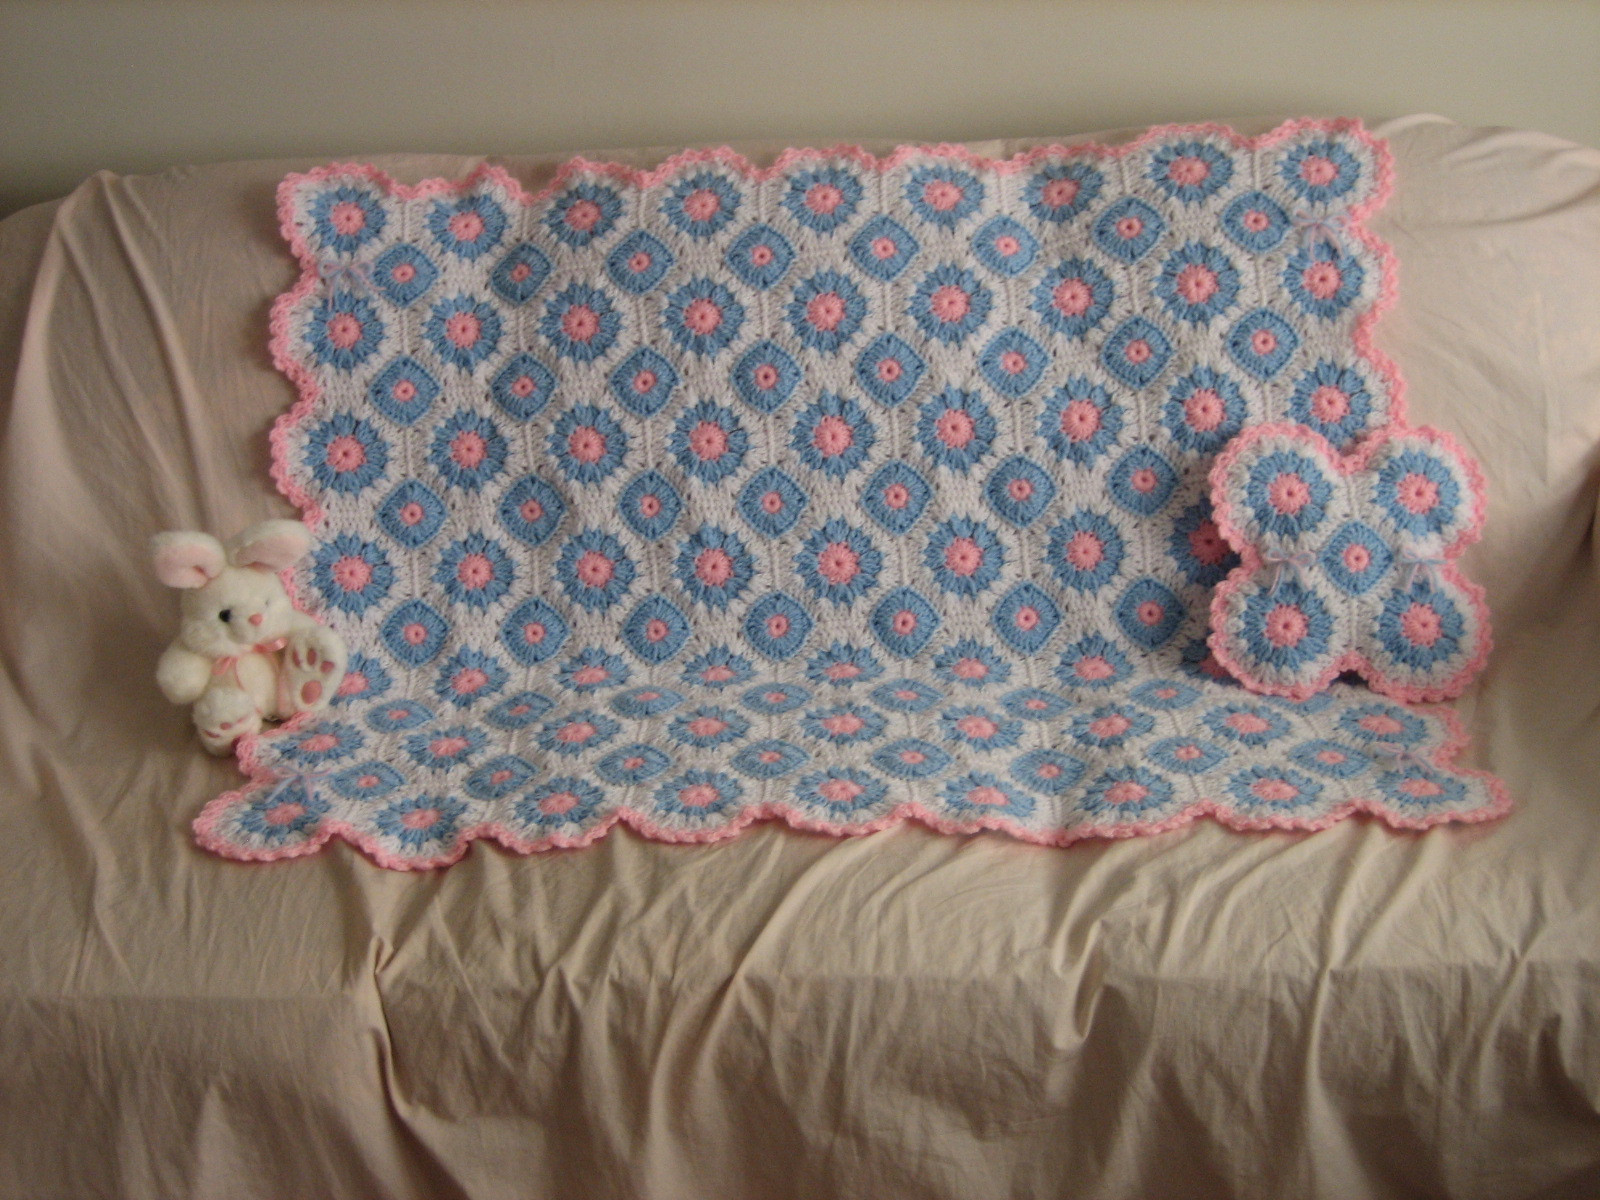 Lacy Crochet Baby Blanket Luxury Lacy Crochet Afghan and Pillow Set Of Top 48 Ideas Lacy Crochet Baby Blanket